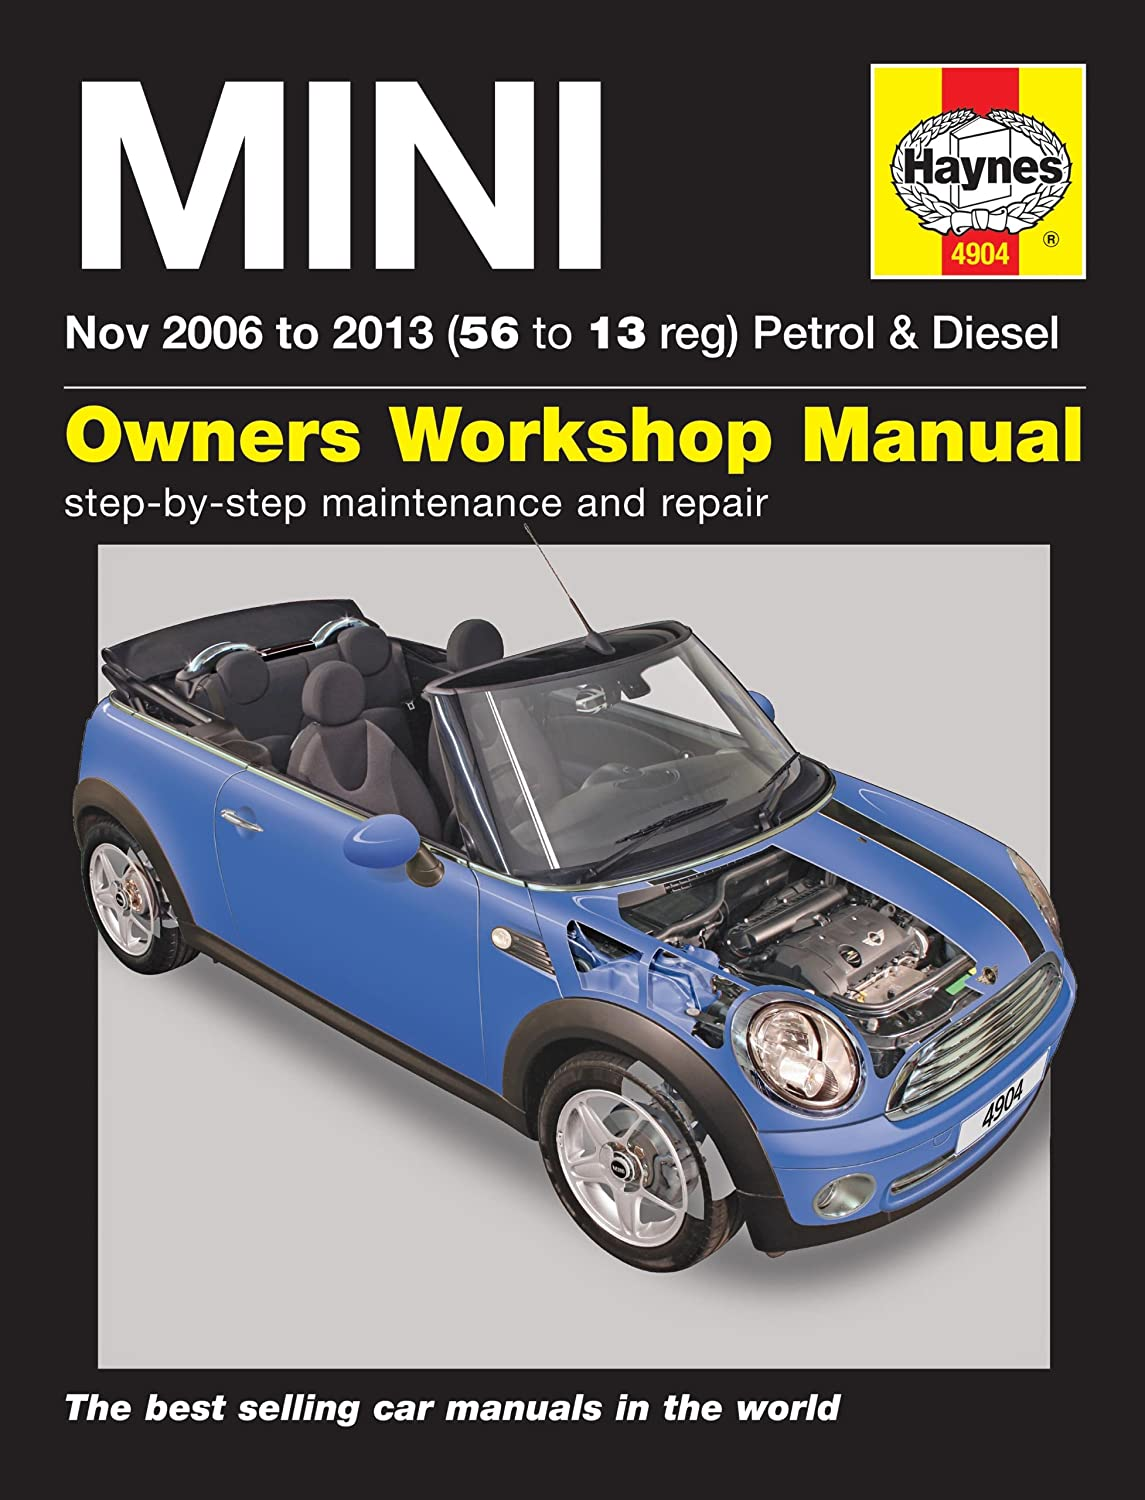 2007 cooper owners manual how to and user guide instructions u2022 rh taxibermuda co 2007 mini cooper owners manual online 2007 mini cooper owners manual radio